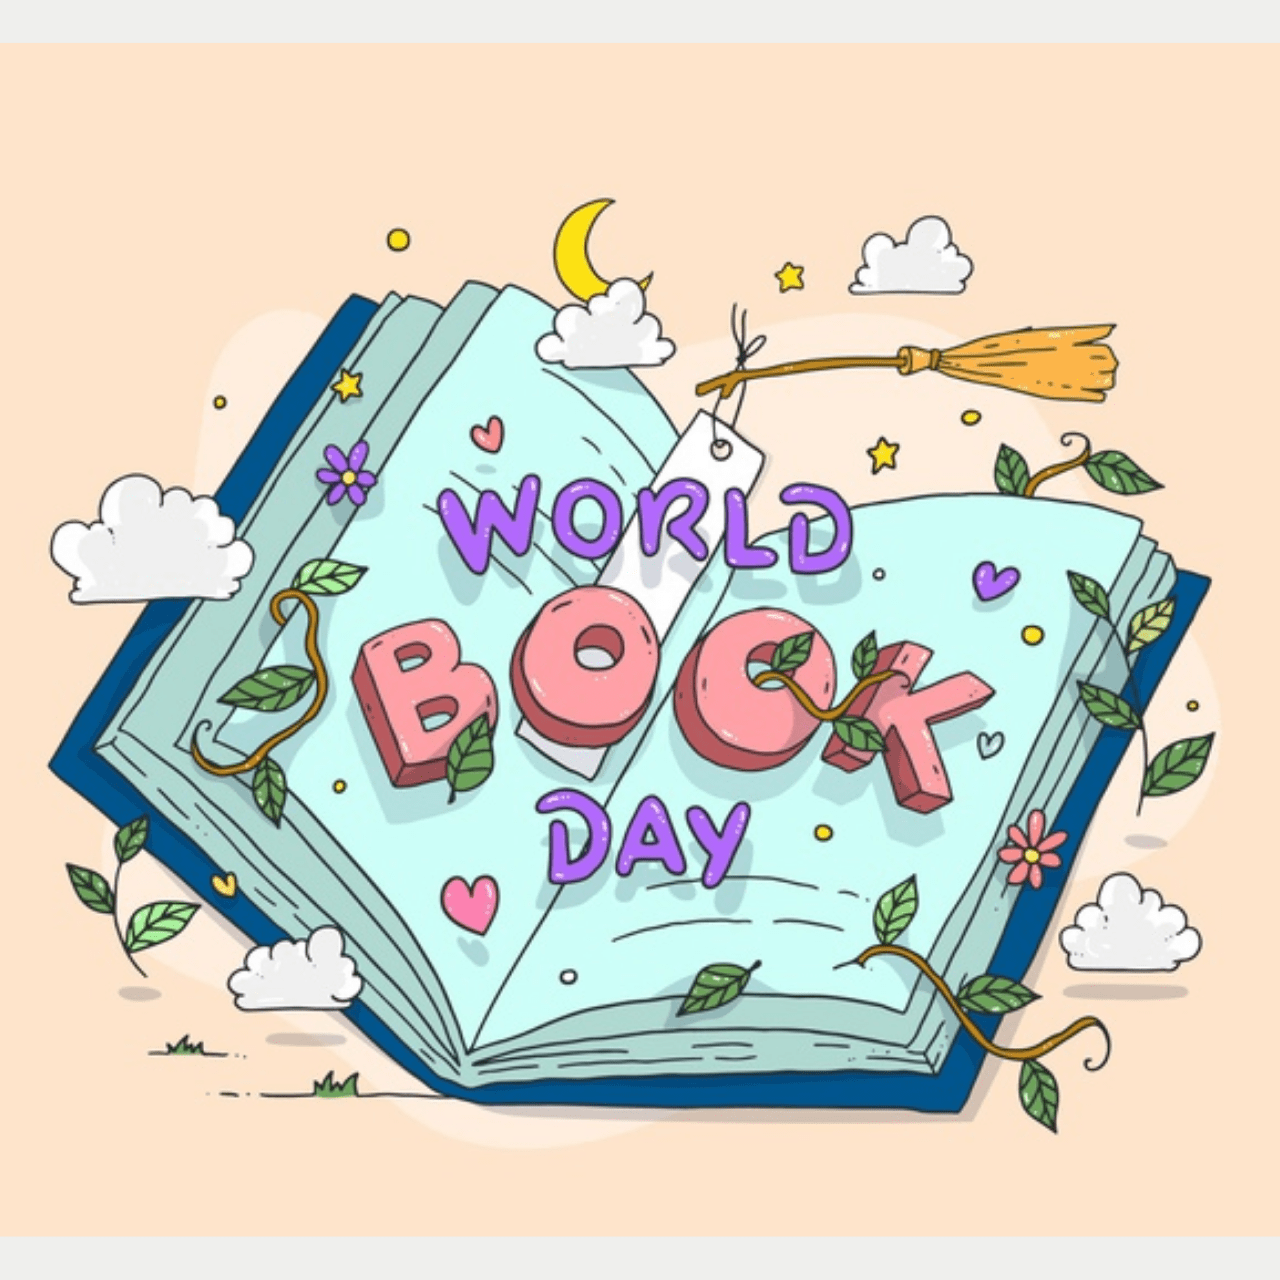 World Book Day 2021 Theme, and 10 interesting Quotes to Share on World Book and Copyright Day